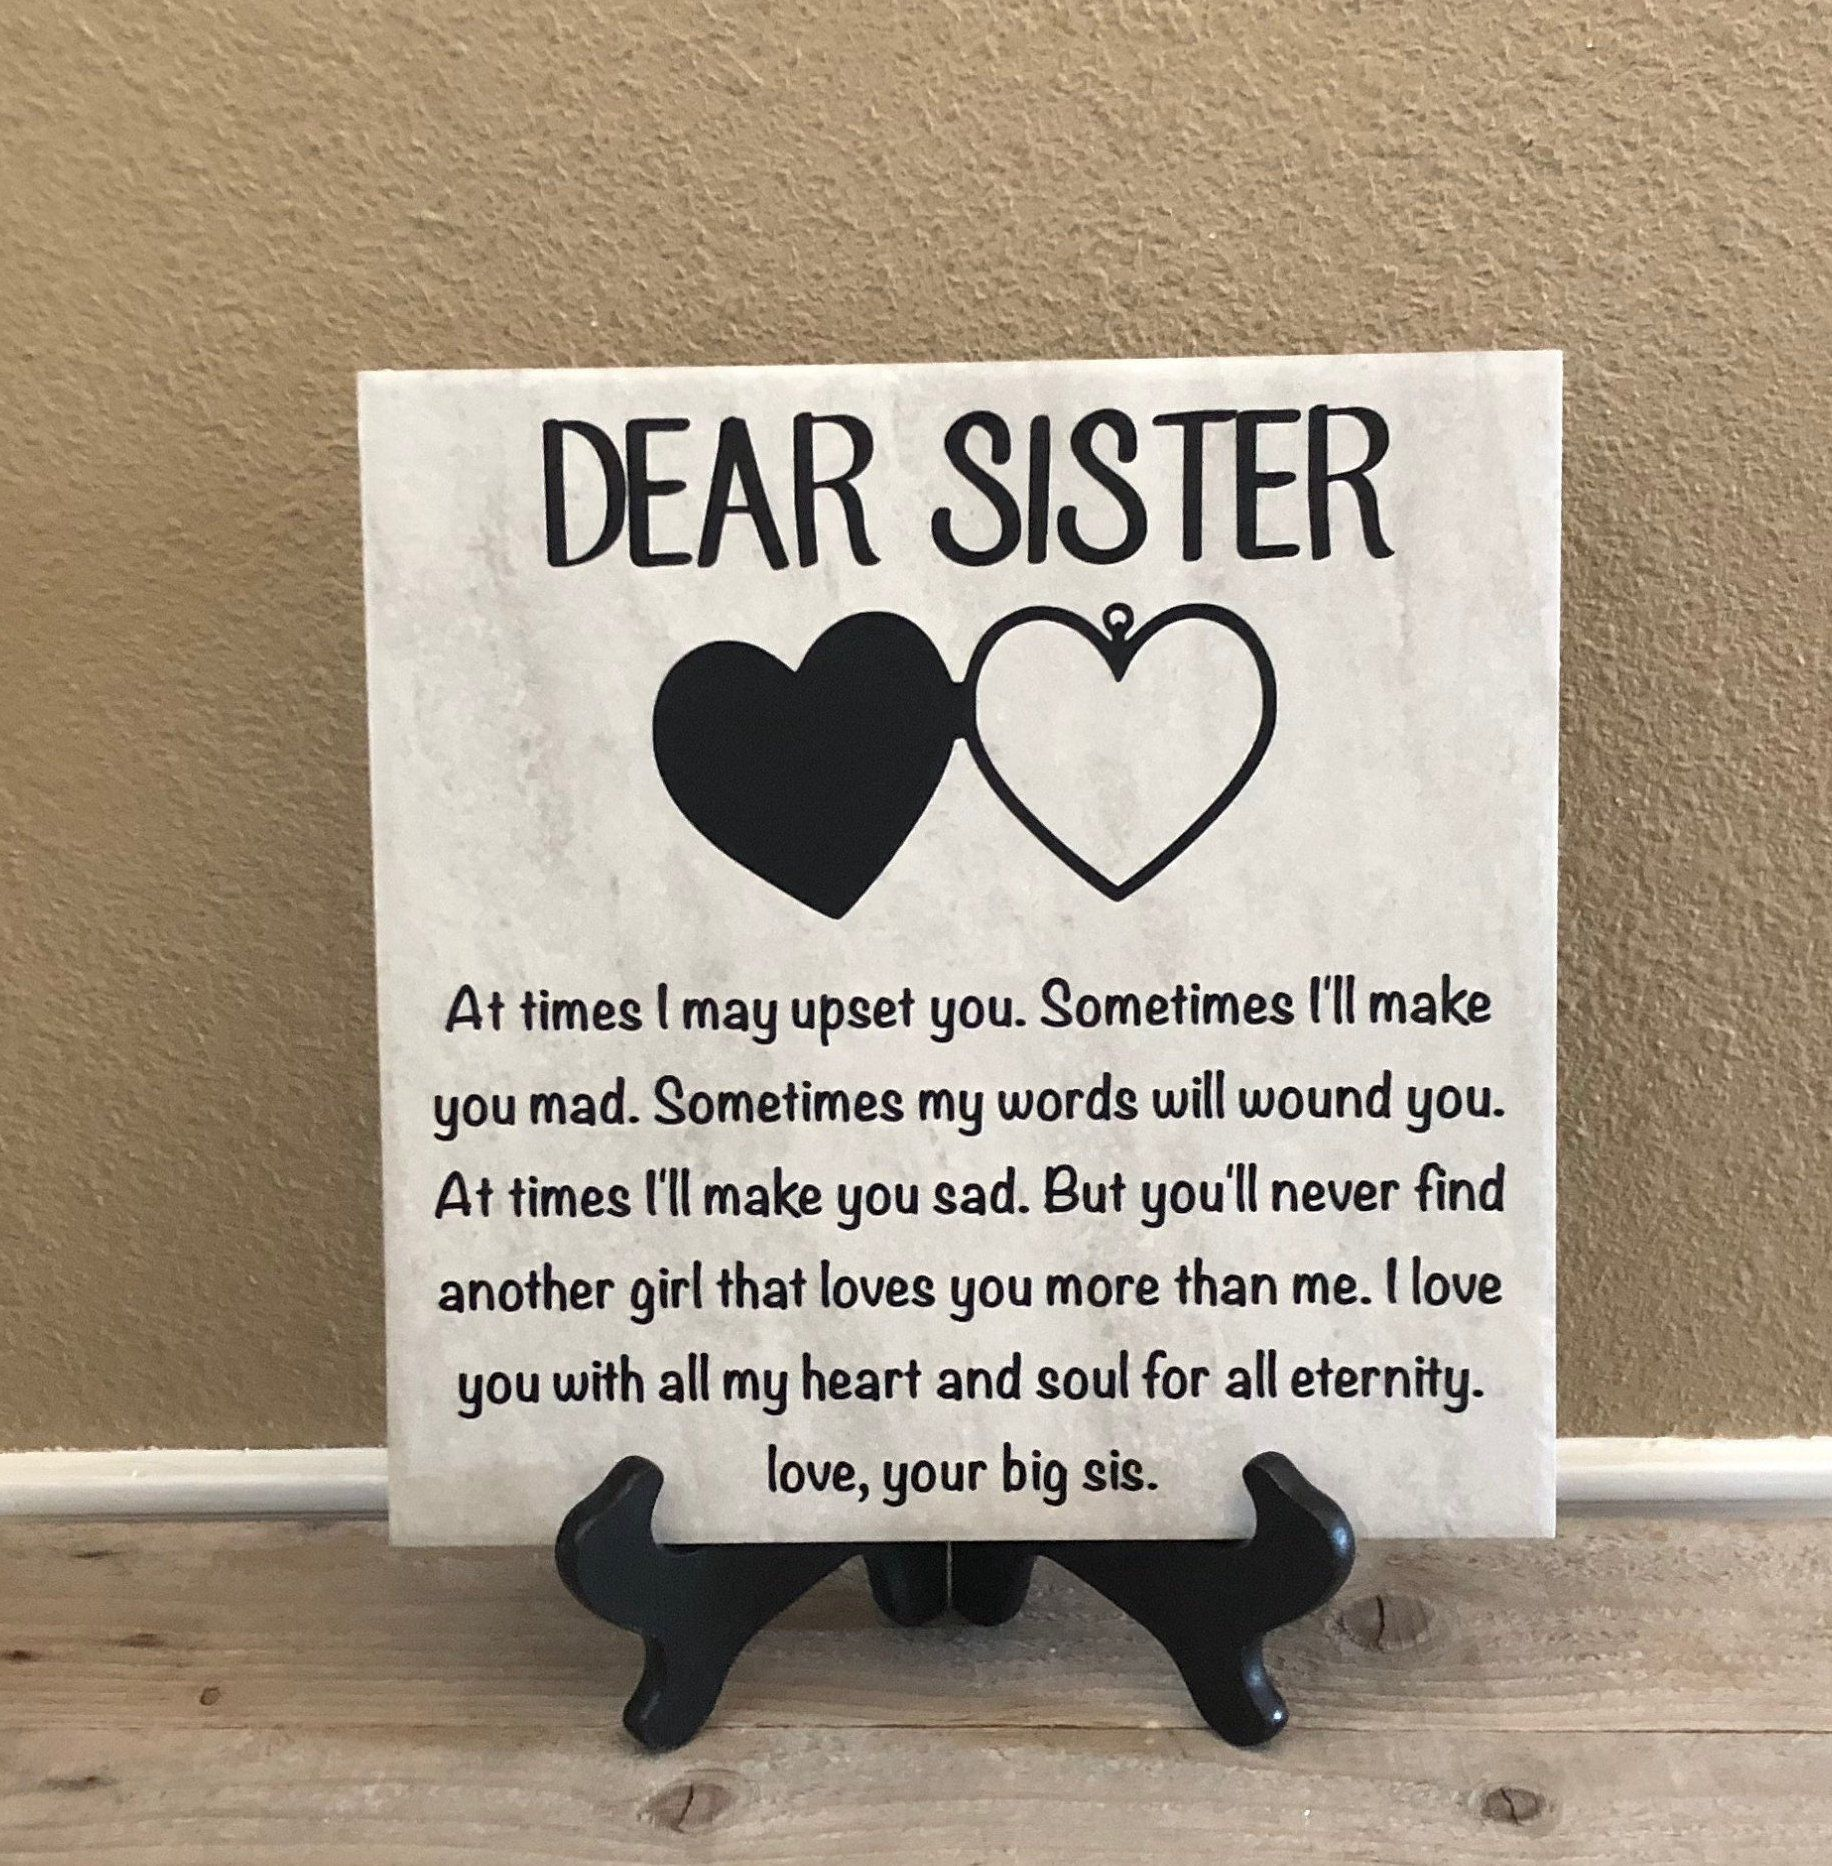 Gift For Sister Birthday Day Gifts Christmas Gifts Etsy Unique Gifts For Sister Birthday Gifts For Sister Personalized Christmas Gifts